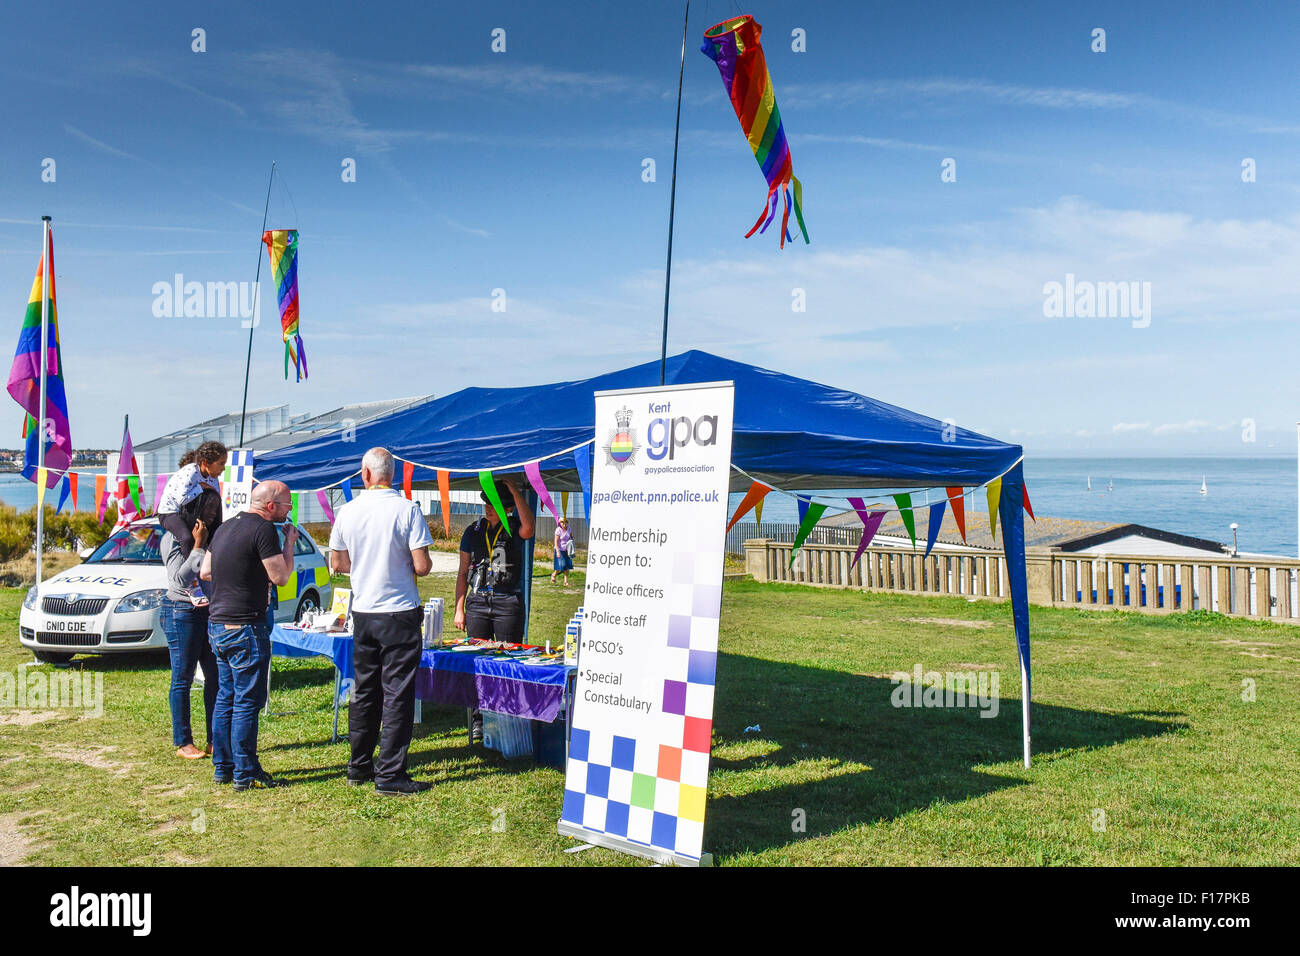 Margate, Kent, UK. 29th August, 2015. The Gay Police Association run a stall during the Kent Pride celebrations - Stock Image